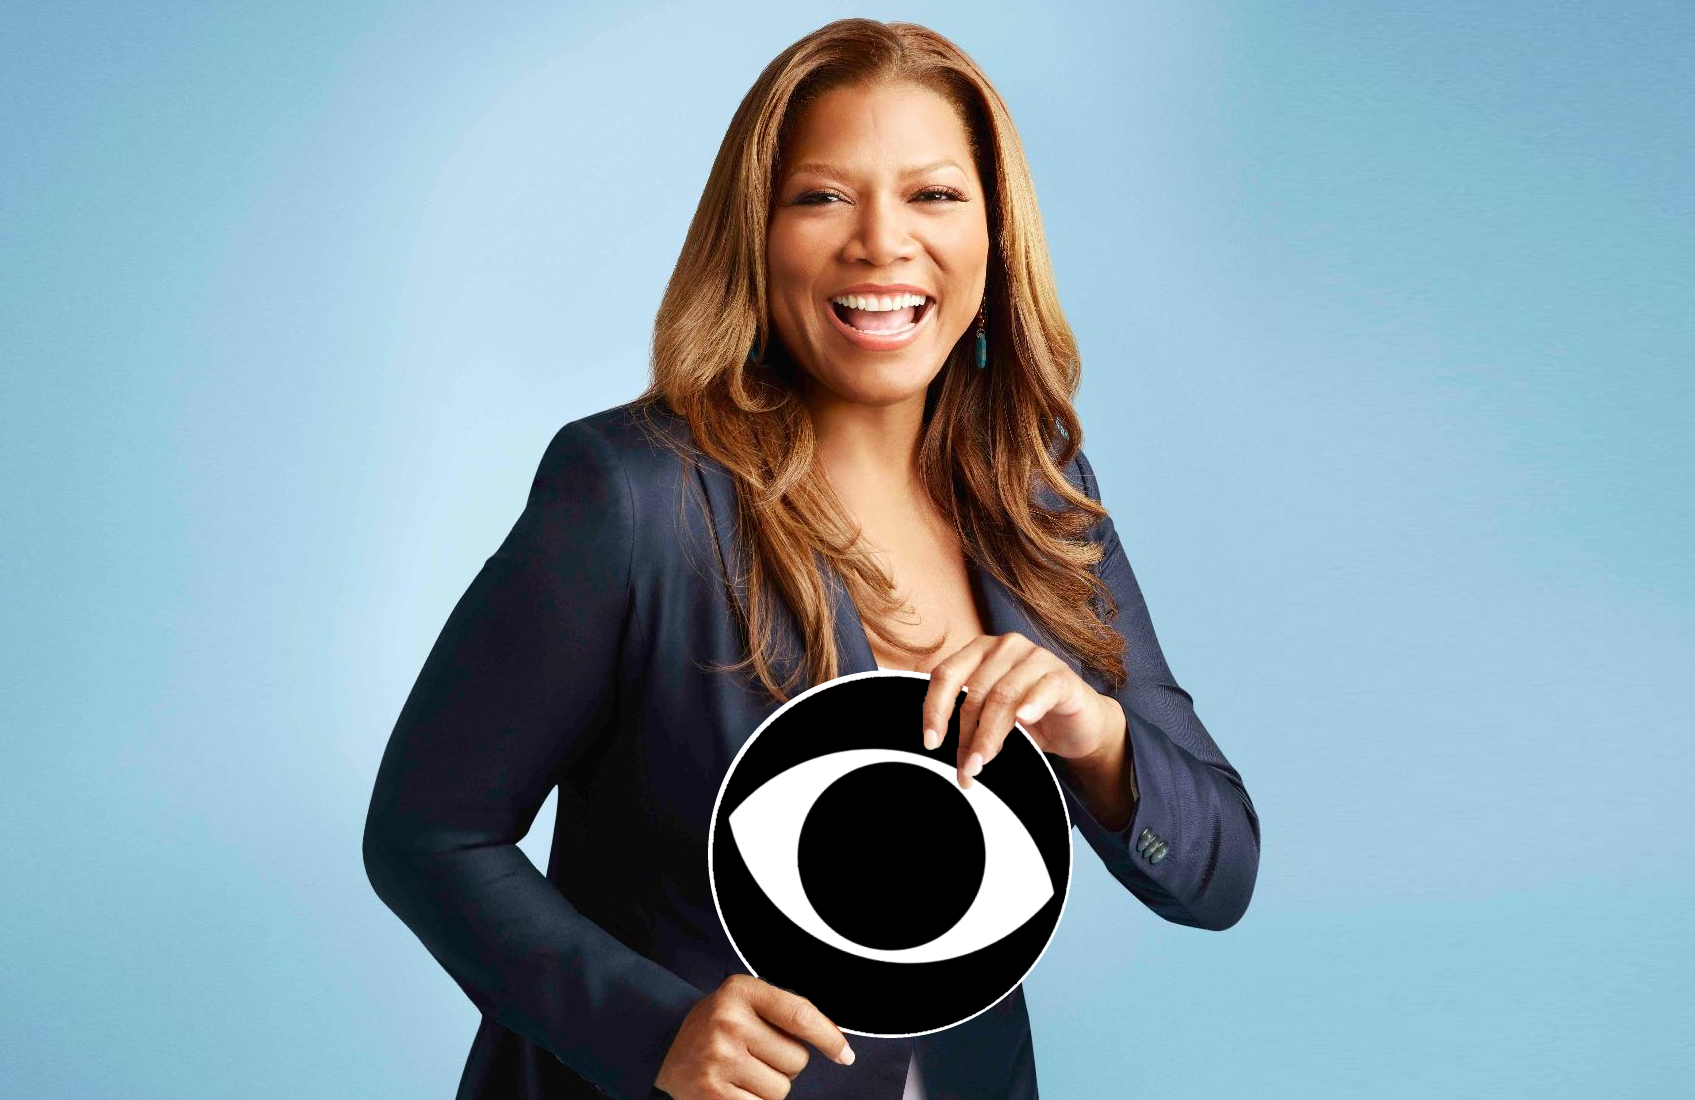 Among the shows vying for a spot on the network's 2020-21 schedule is a re-imagining of The Equalizer, with Queen Latifah in the lead role.